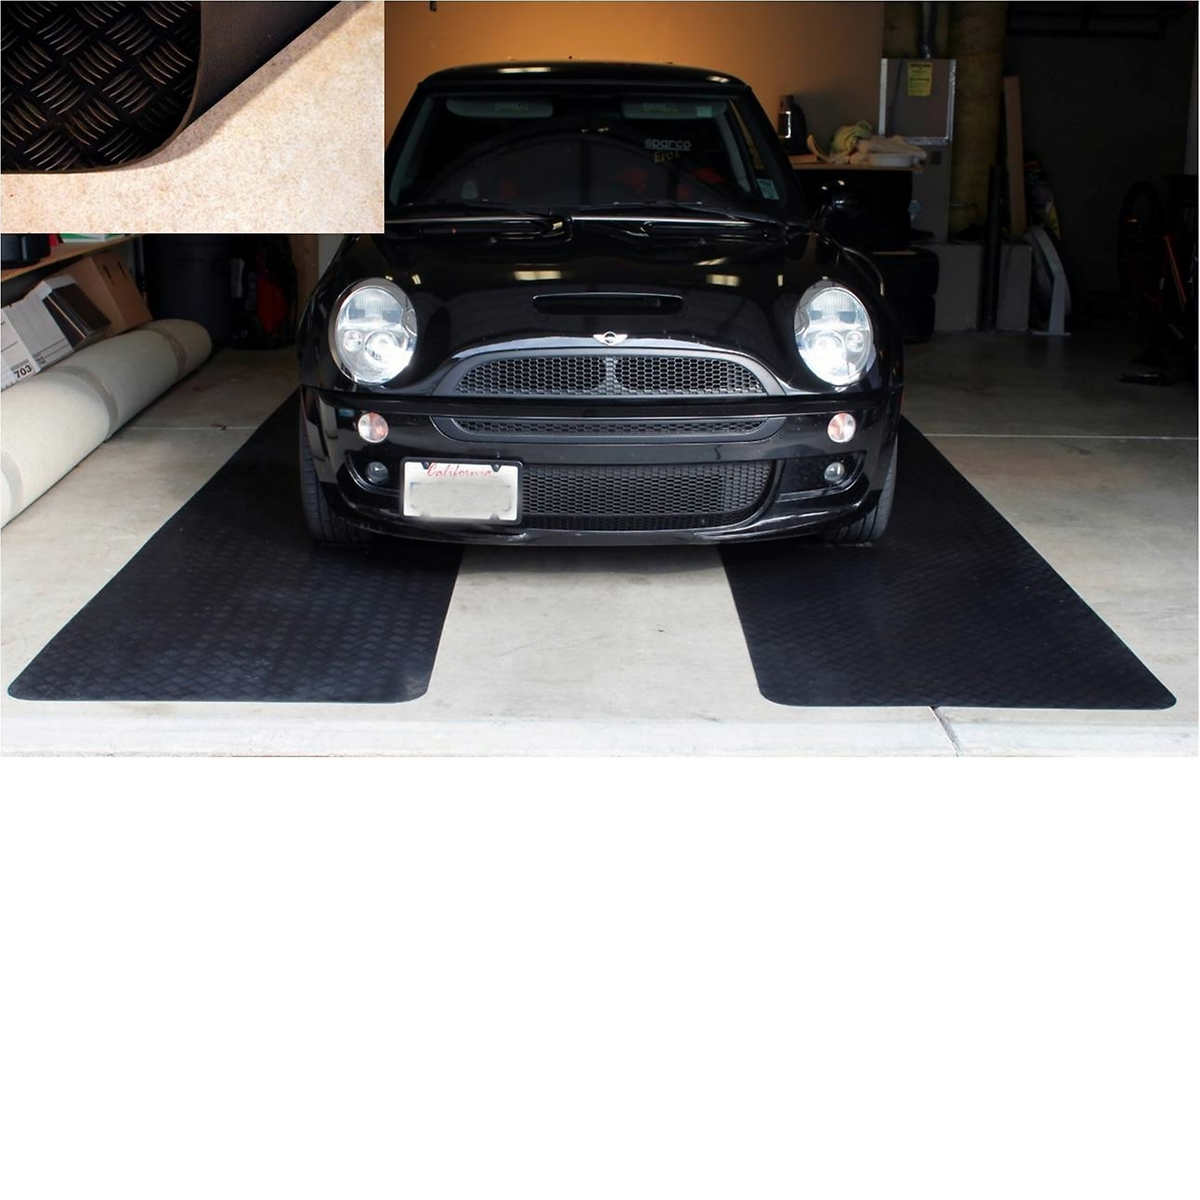 3 X 15 Coverguard Garage Floor Rubber Mat Xl Ebay Make Your Own Beautiful  HD Wallpapers, Images Over 1000+ [ralydesign.ml]